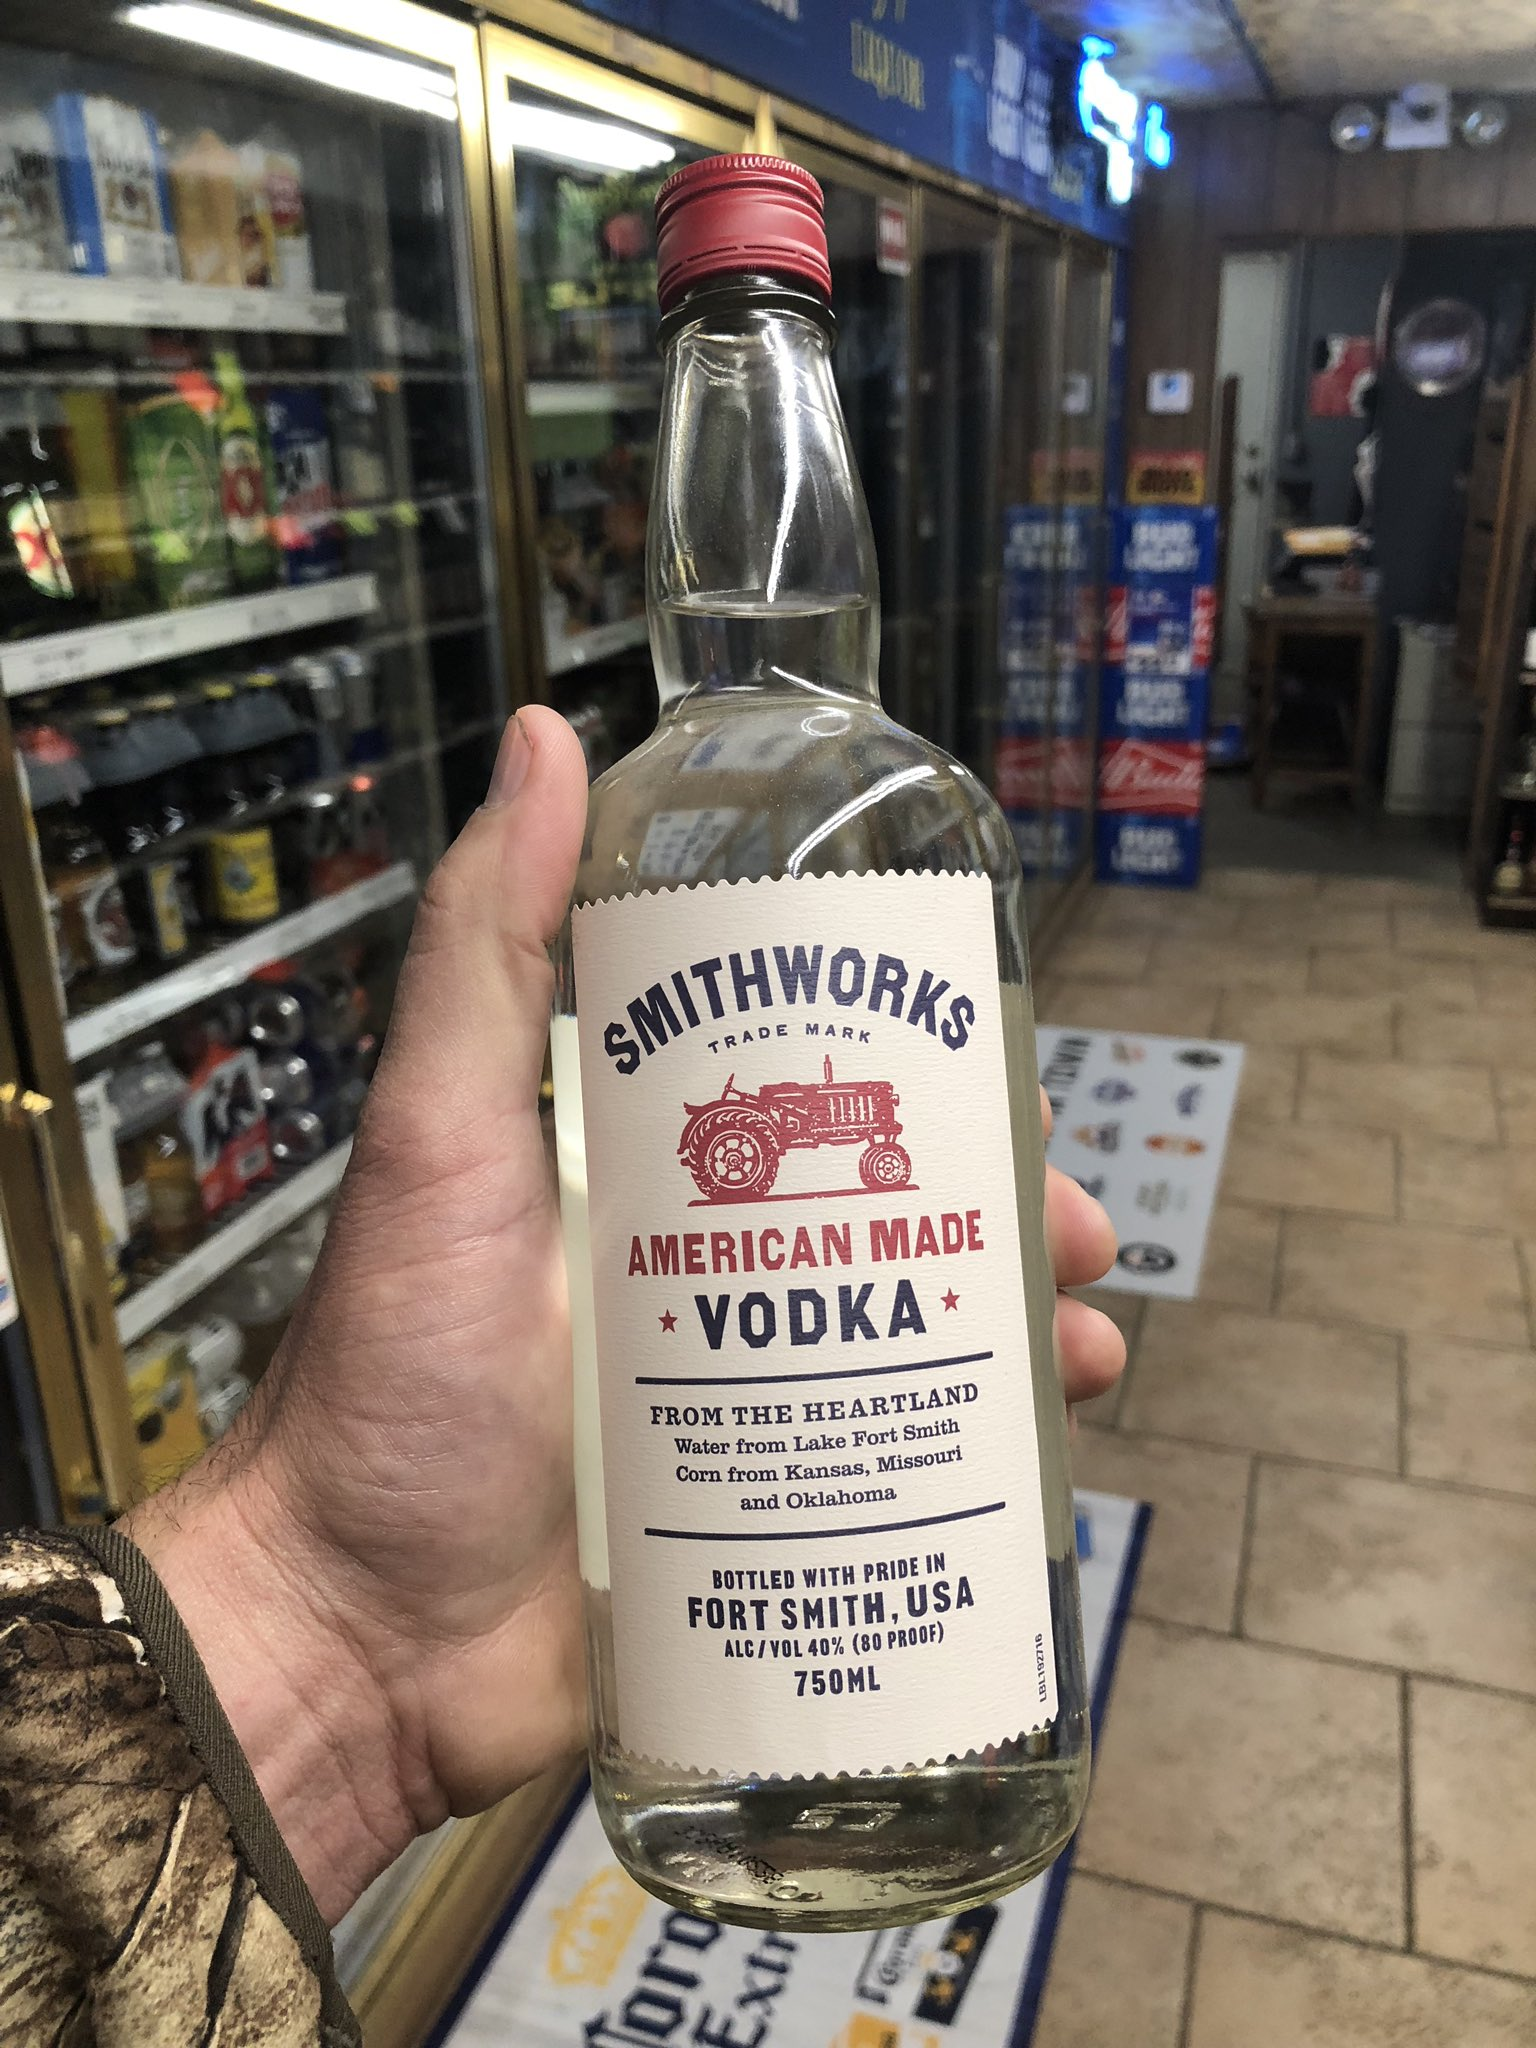 I love Kansas.. Thank you Hejny liquor in Great Bend for stocking @SmithworksVodka!!! Gonna be a good night.. https://t.co/zKQCYE2Zrb